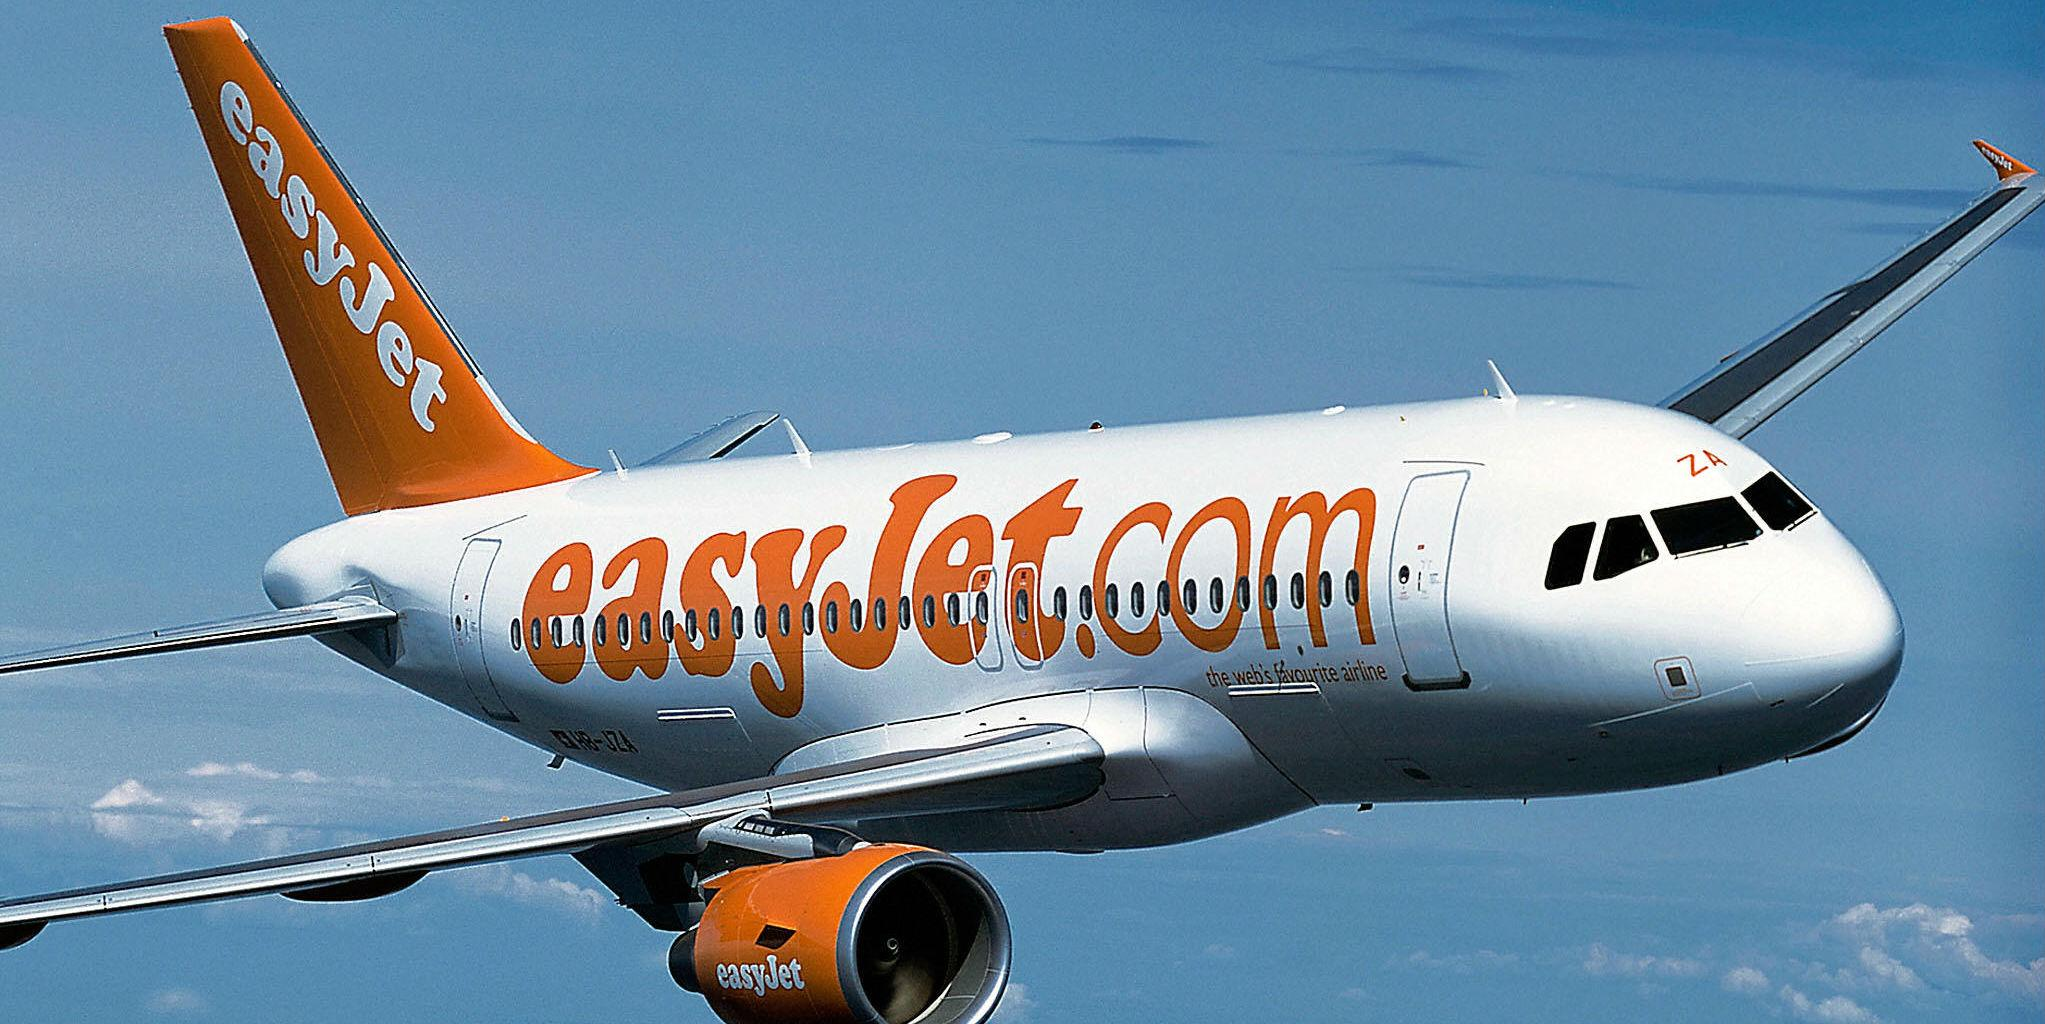 That Viral Easyjet Backless Seat Picture Might Not Be What